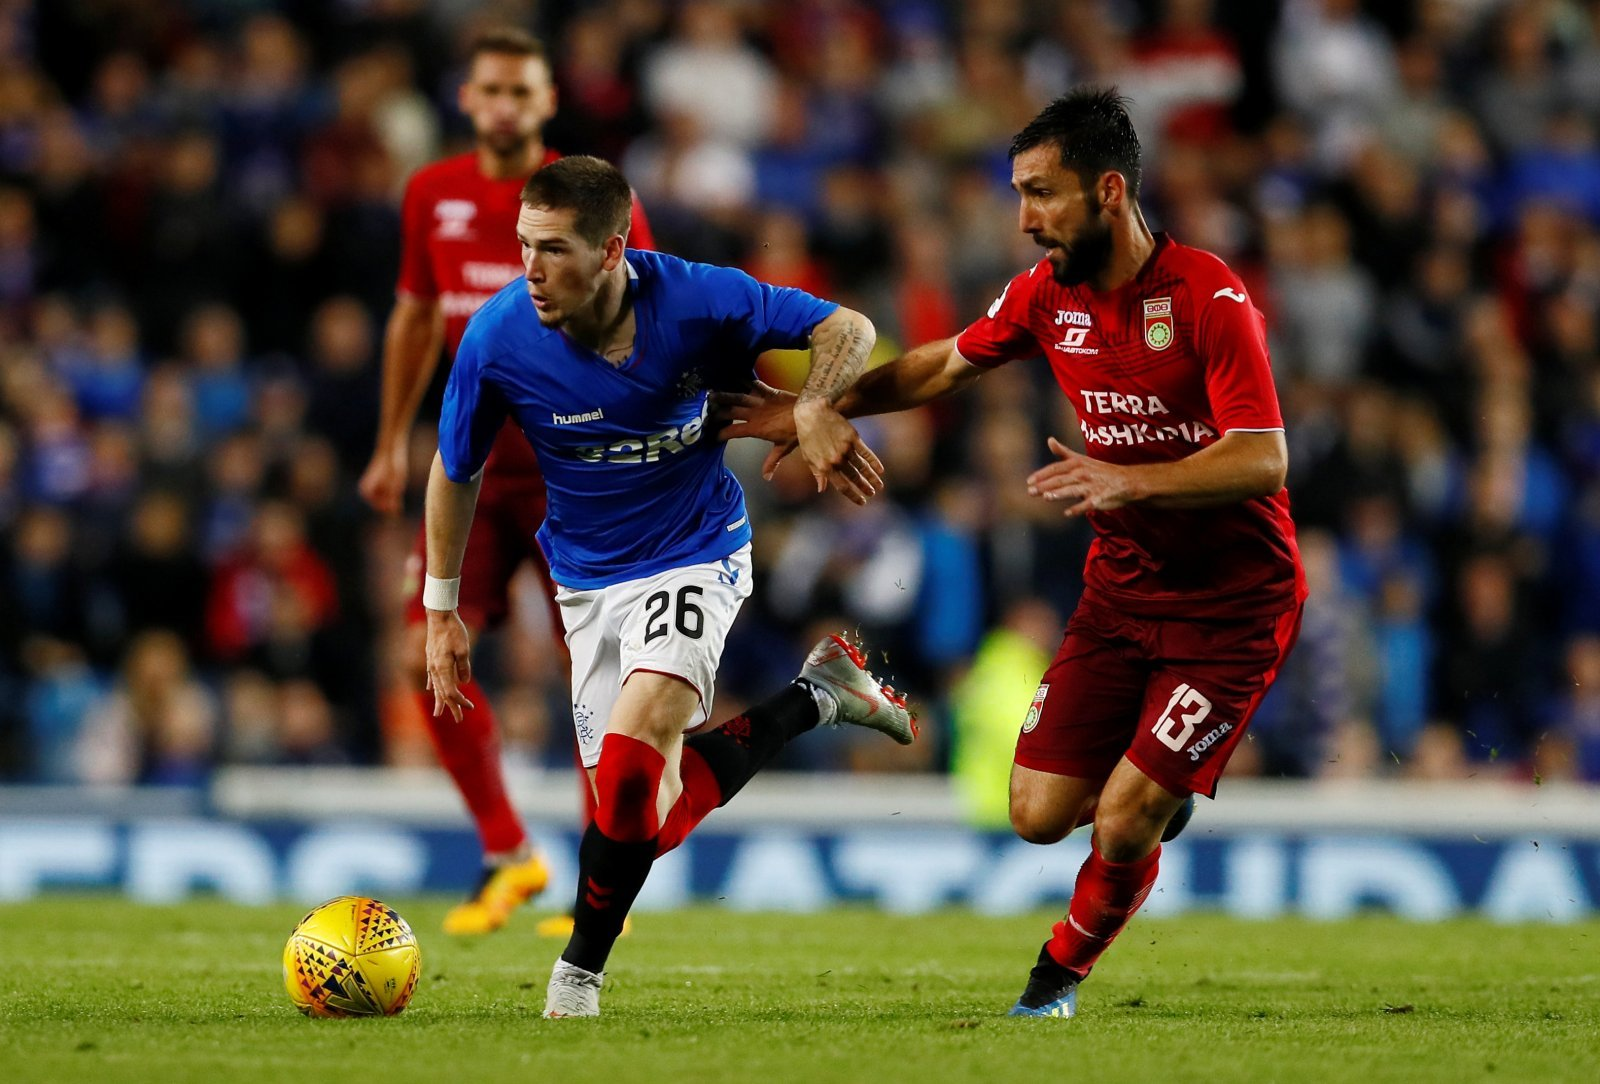 Rangers fans take to Twitter to call for permanent Kent transfer